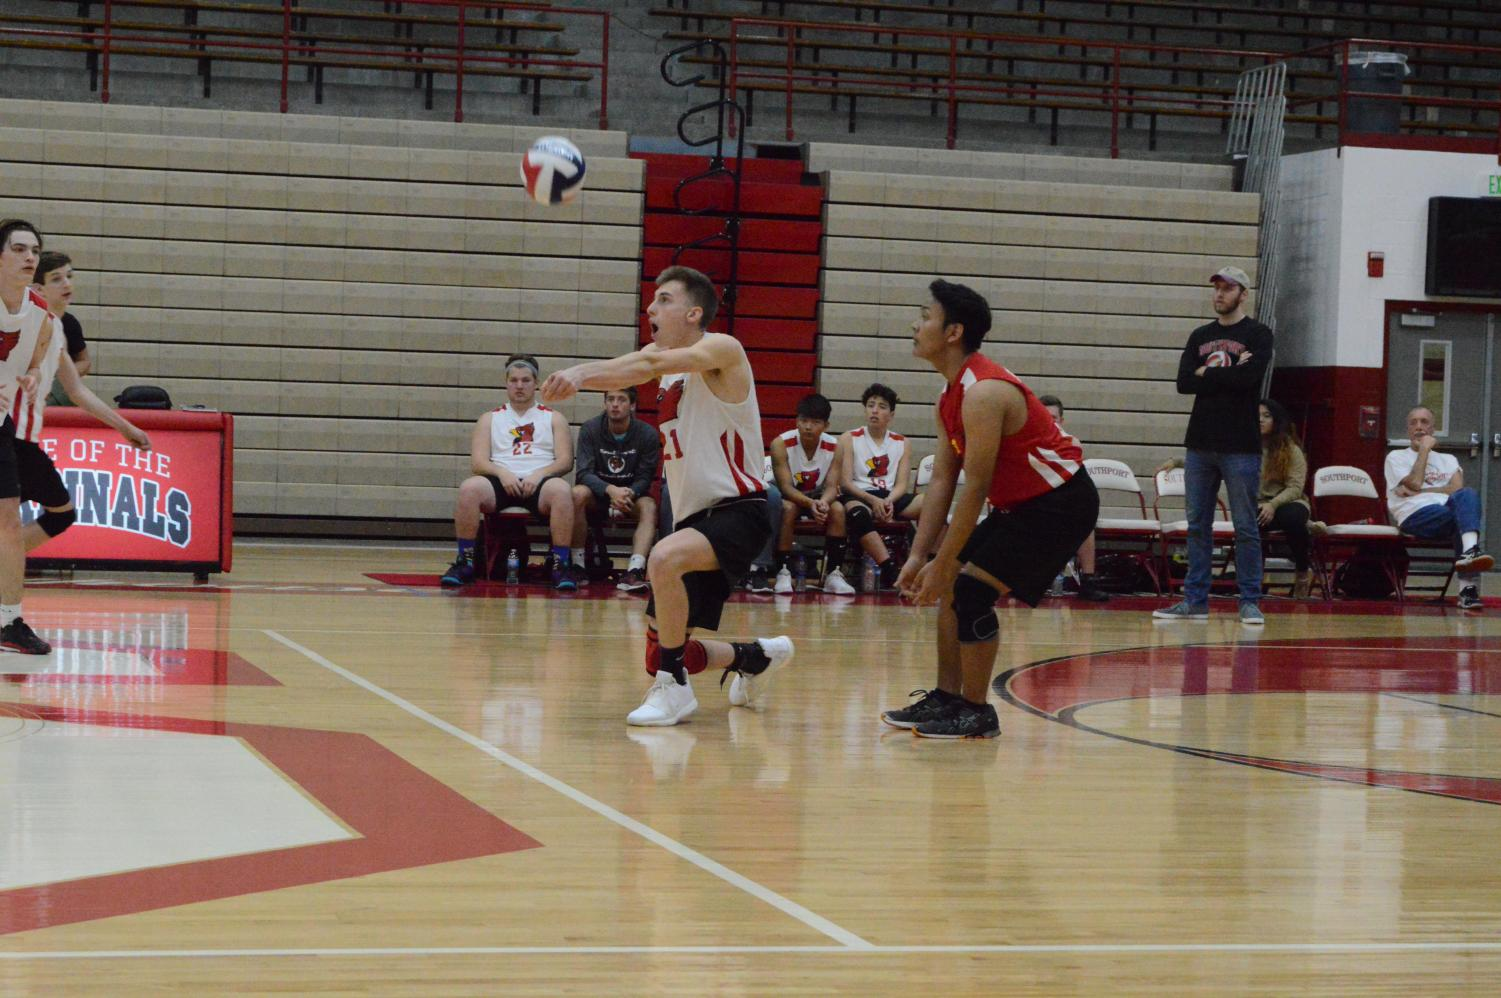 Junior Carson Meadors gets ready to return the ball to the opposing team during their game against LHS on April 11.